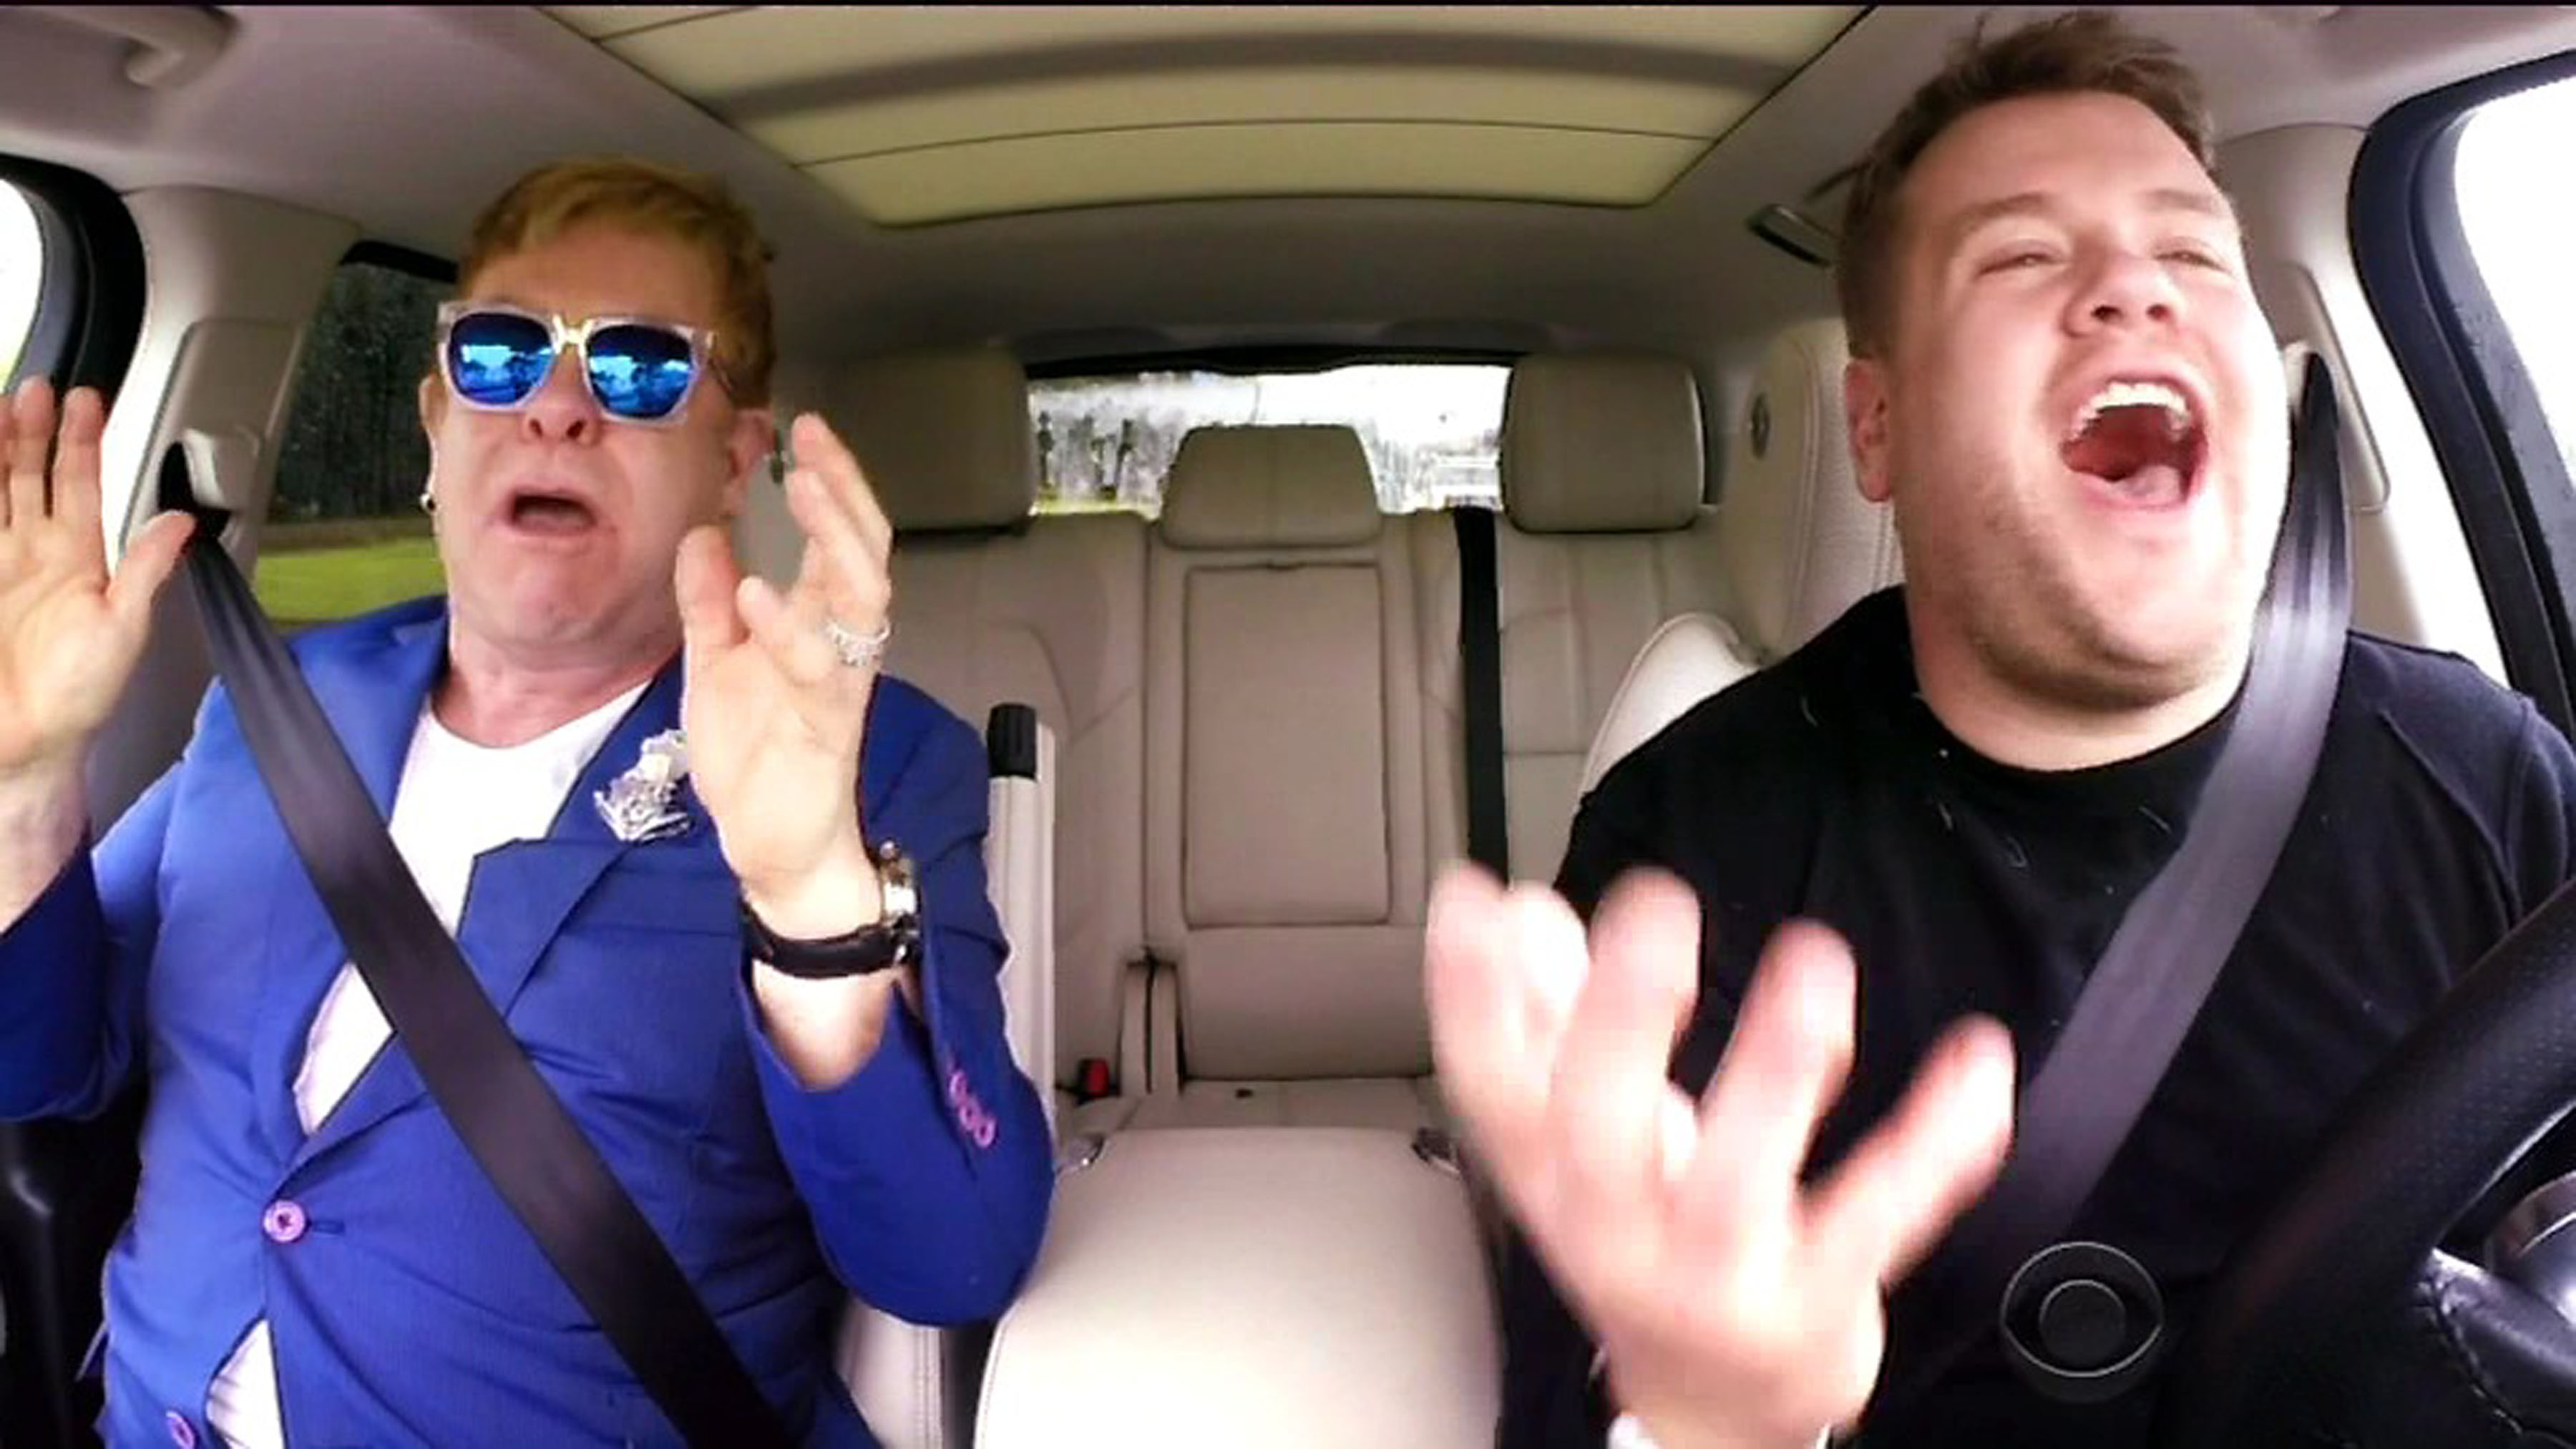 5 February 2016 - Los Angeles - USA **** STRICTLY NOT AVAILABLE FOR USA *** Elton John does Carpool Karaoke on The Late Late Show. Host James Corden gave a 30 second sneak peak at Sir Elton joining him on the road for the popular segment. Dressed in a blue jacket and matching sunglasses, Elton and Corden belted out his hit Don't Let The Sun Go Down On Me. Corden gave viewers a quick preview of the highly anticipated Carpool Karaoke segment, revealing the full clip would be shown on a special edition of The Late Late Show that would air after the Superbowl this coming Sunday. XPOSURE PHOTOS DOES NOT CLAIM ANY COPYRIGHT OR LICENSE IN THE ATTACHED MATERIAL. ANY DOWNLOADING FEES CHARGED BY XPOSURE ARE FOR XPOSURE'S SERVICES ONLY, AND DO NOT, NOR ARE THEY INTENDED TO, CONVEY TO THE USER ANY COPYRIGHT OR LICENSE IN THE MATERIAL. BY PUBLISHING THIS MATERIAL , THE USER EXPRESSLY AGREES TO INDEMNIFY AND TO HOLD XPOSURE HARMLESS FROM ANY CLAIMS, DEMANDS, OR CAUSES OF ACTION ARISING OUT OF OR CONNECTED IN ANY WAY WITH USER'S PUBLICATION OF THE MATERIAL. BYLINE MUST READ : CBS/XPOSUREPHOTOS.COM PLEASE CREDIT AS PER BYLINE *UK CLIENTS MUST CALL PRIOR TO TV OR ONLINE USAGE PLEASE TELEPHONE 44 208 344 2007